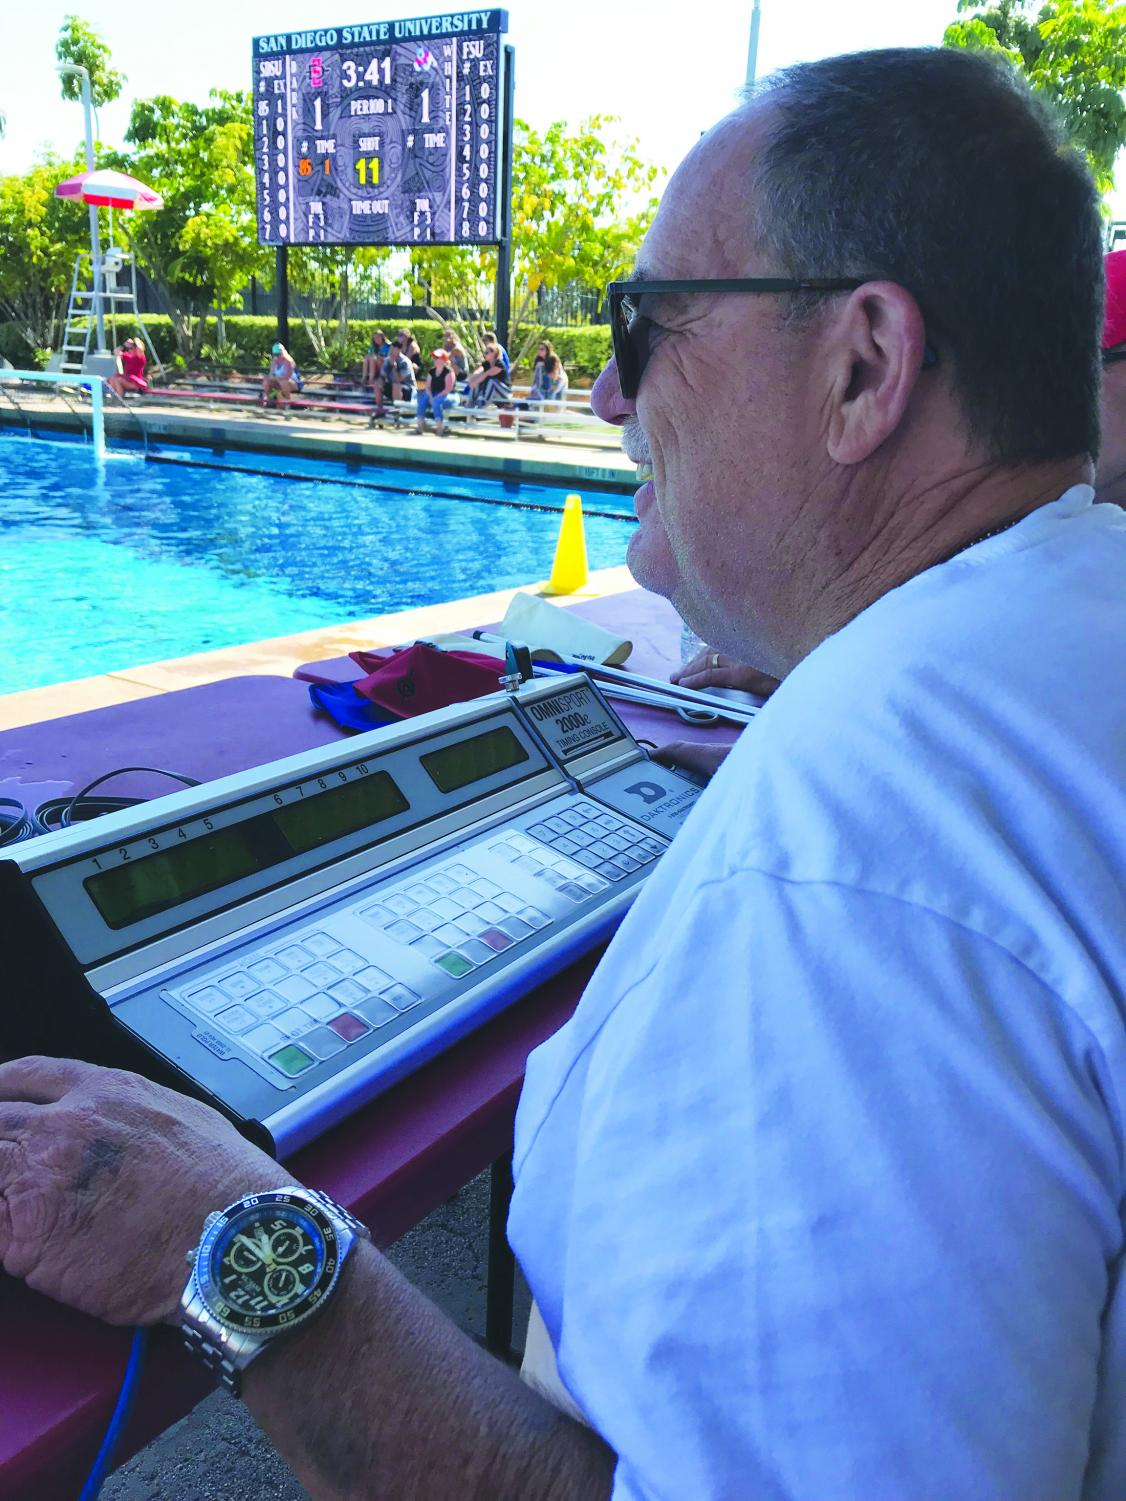 Steve Bartel working the scoreboard during an Aztec water polo match against Fresno State.